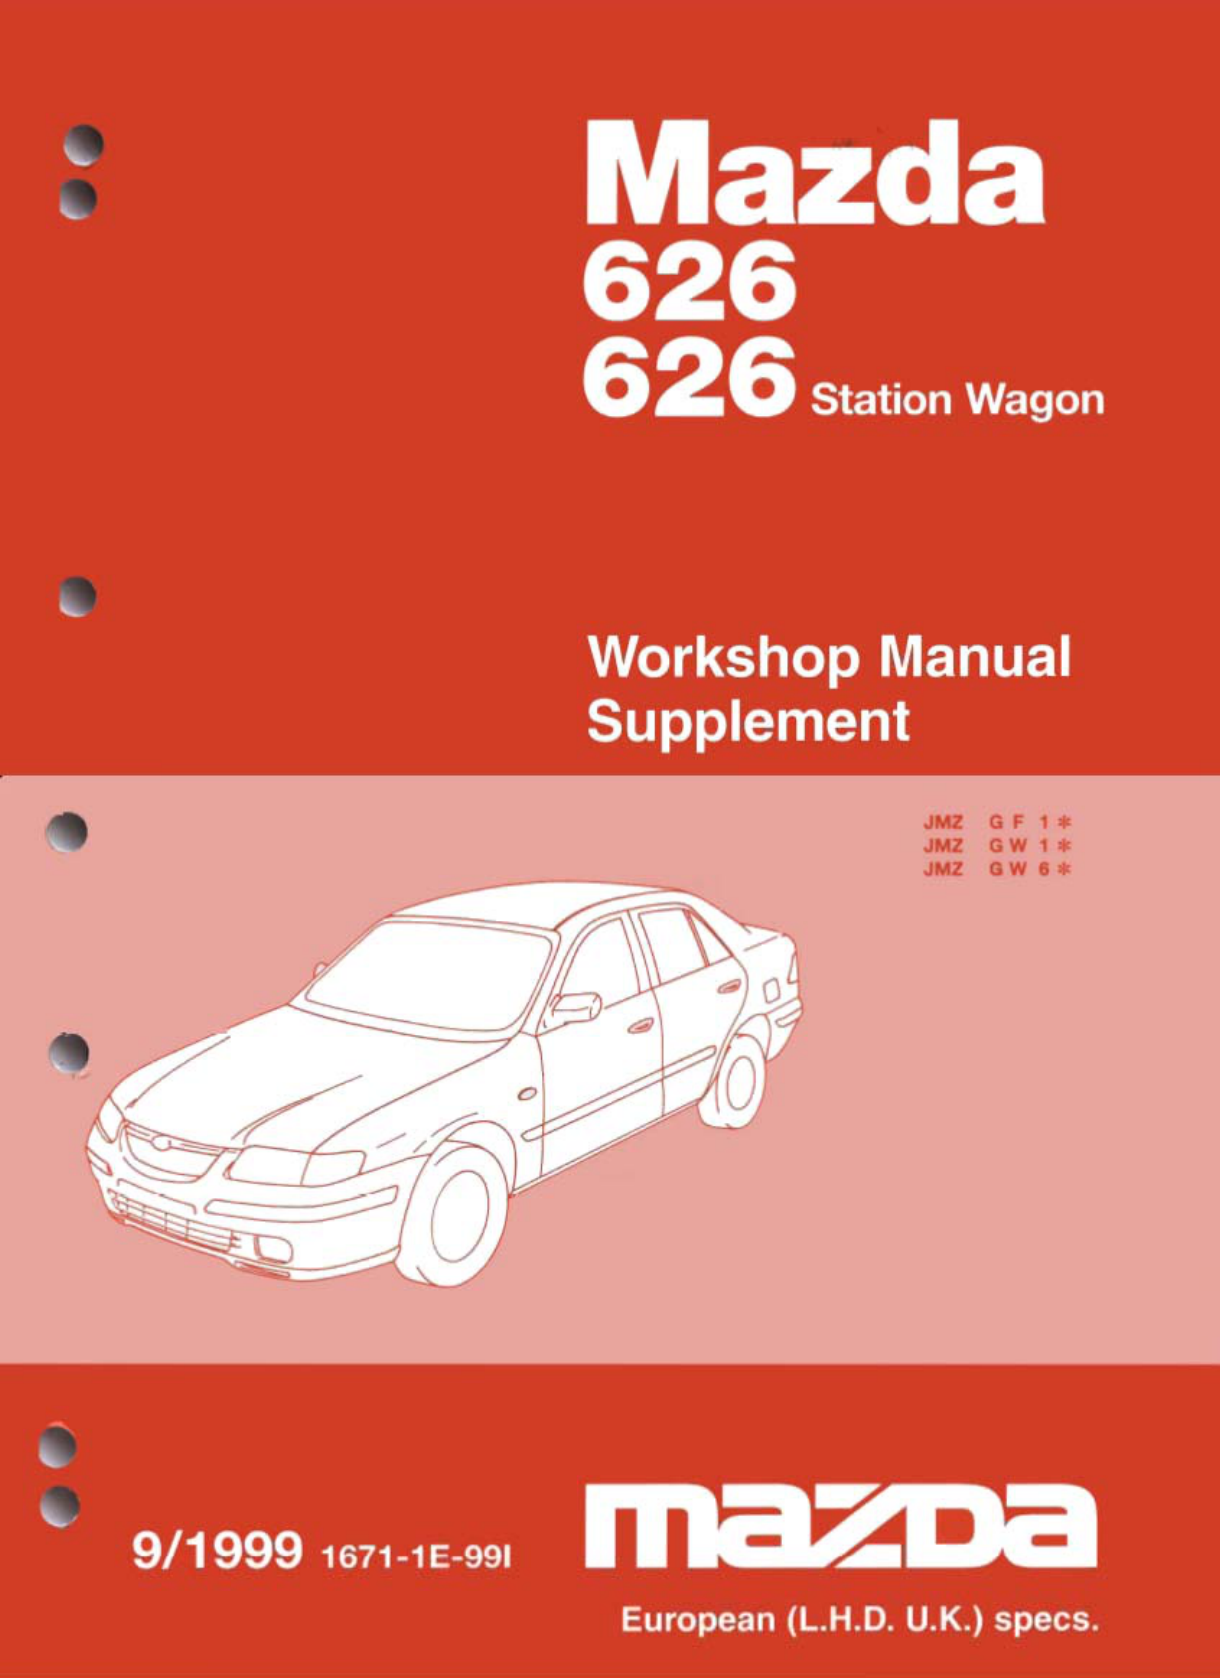 See our other Mazda 626 Manuals: Mazda 626 1998 Workshop ...